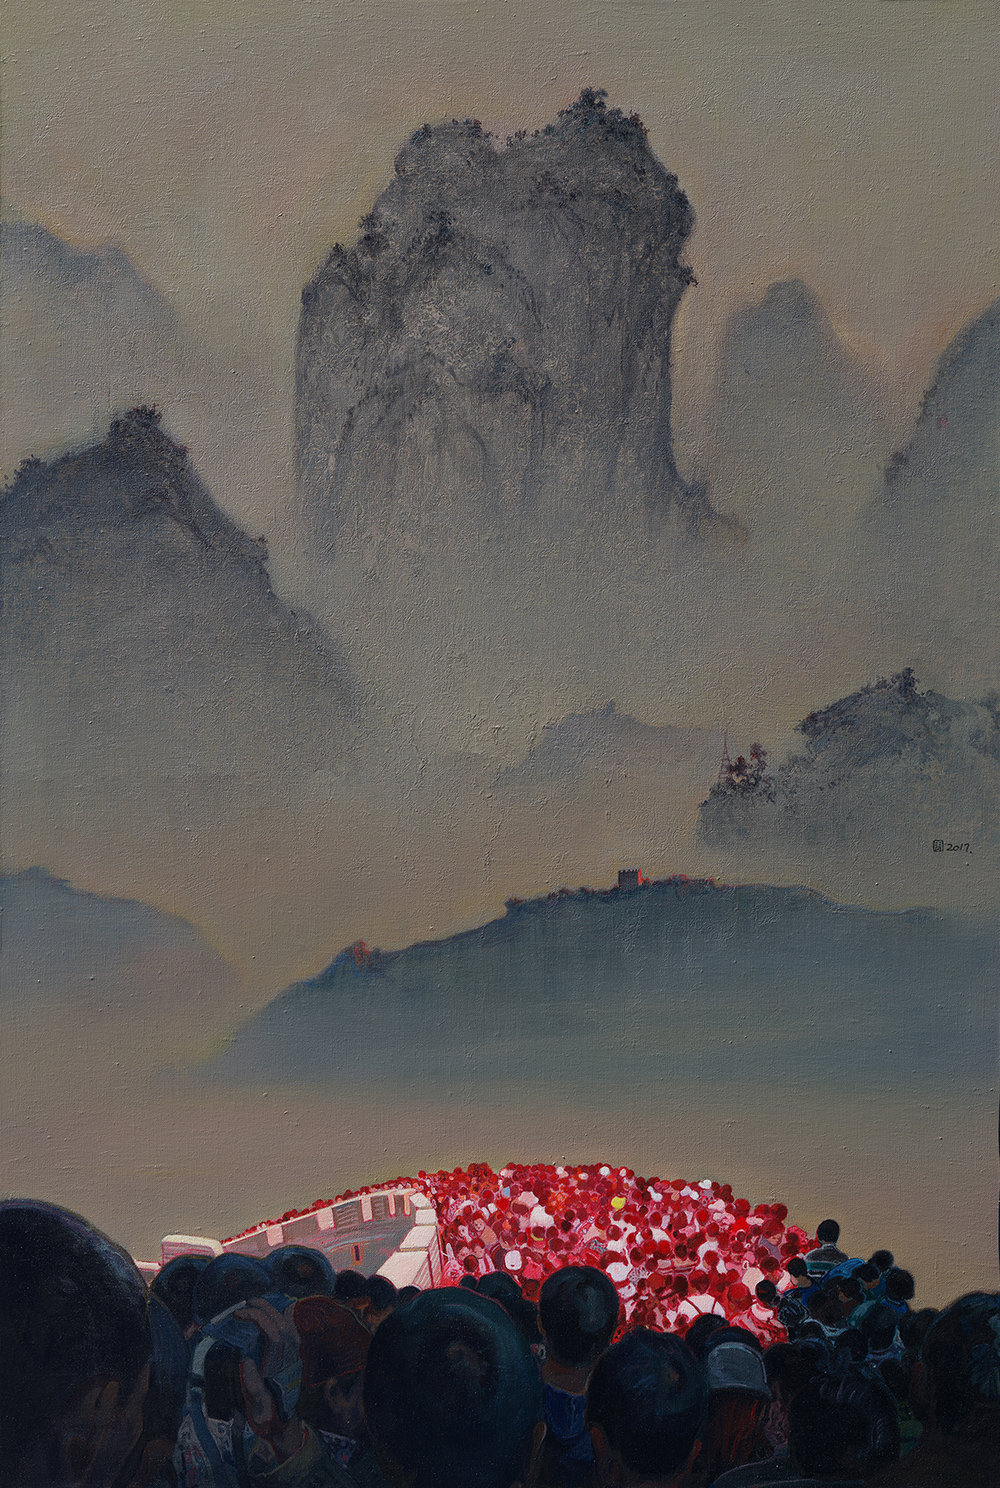 Zhou Jinhua 周金华, The Great Wall 长城, 2017, Acrylic on canvas 布面丙烯, 120 x 80 cm